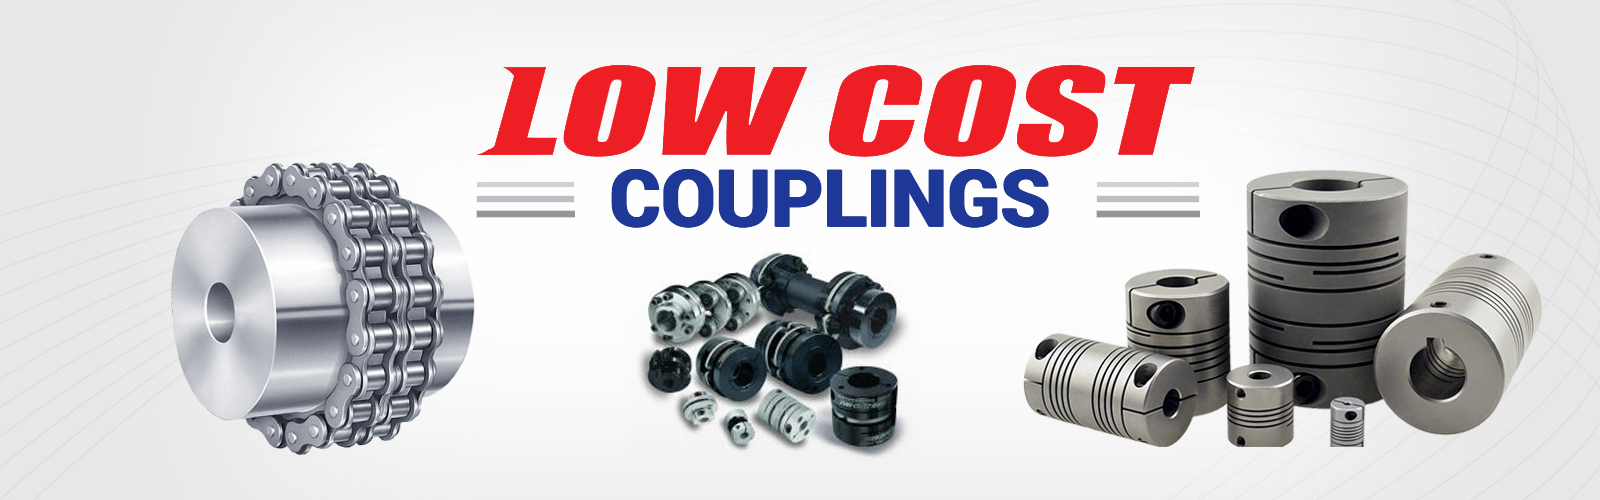 Coupling dealers in mumbai, chennai, bangalore, pune, india, uae, delhi, nagpur